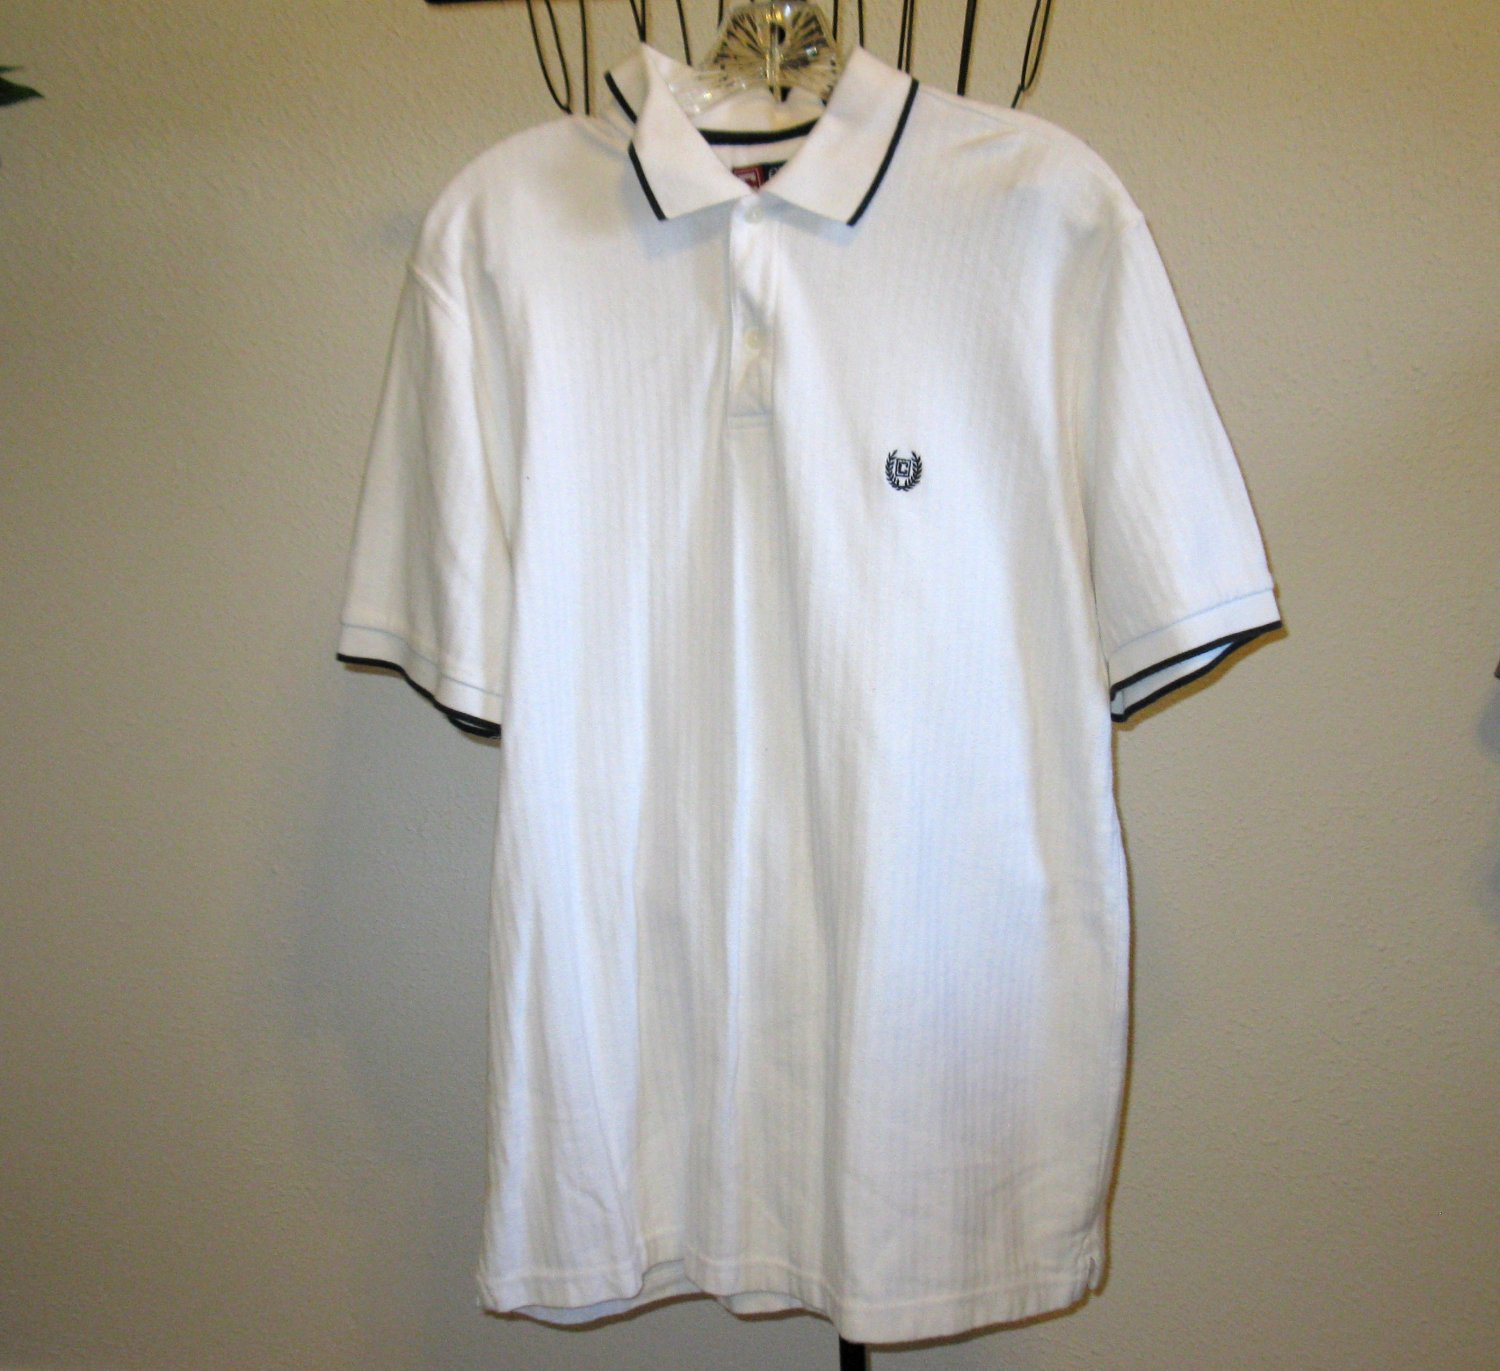 White Men�s Golf Shirt by Chaps Size L/G (Large) Nice! #T845